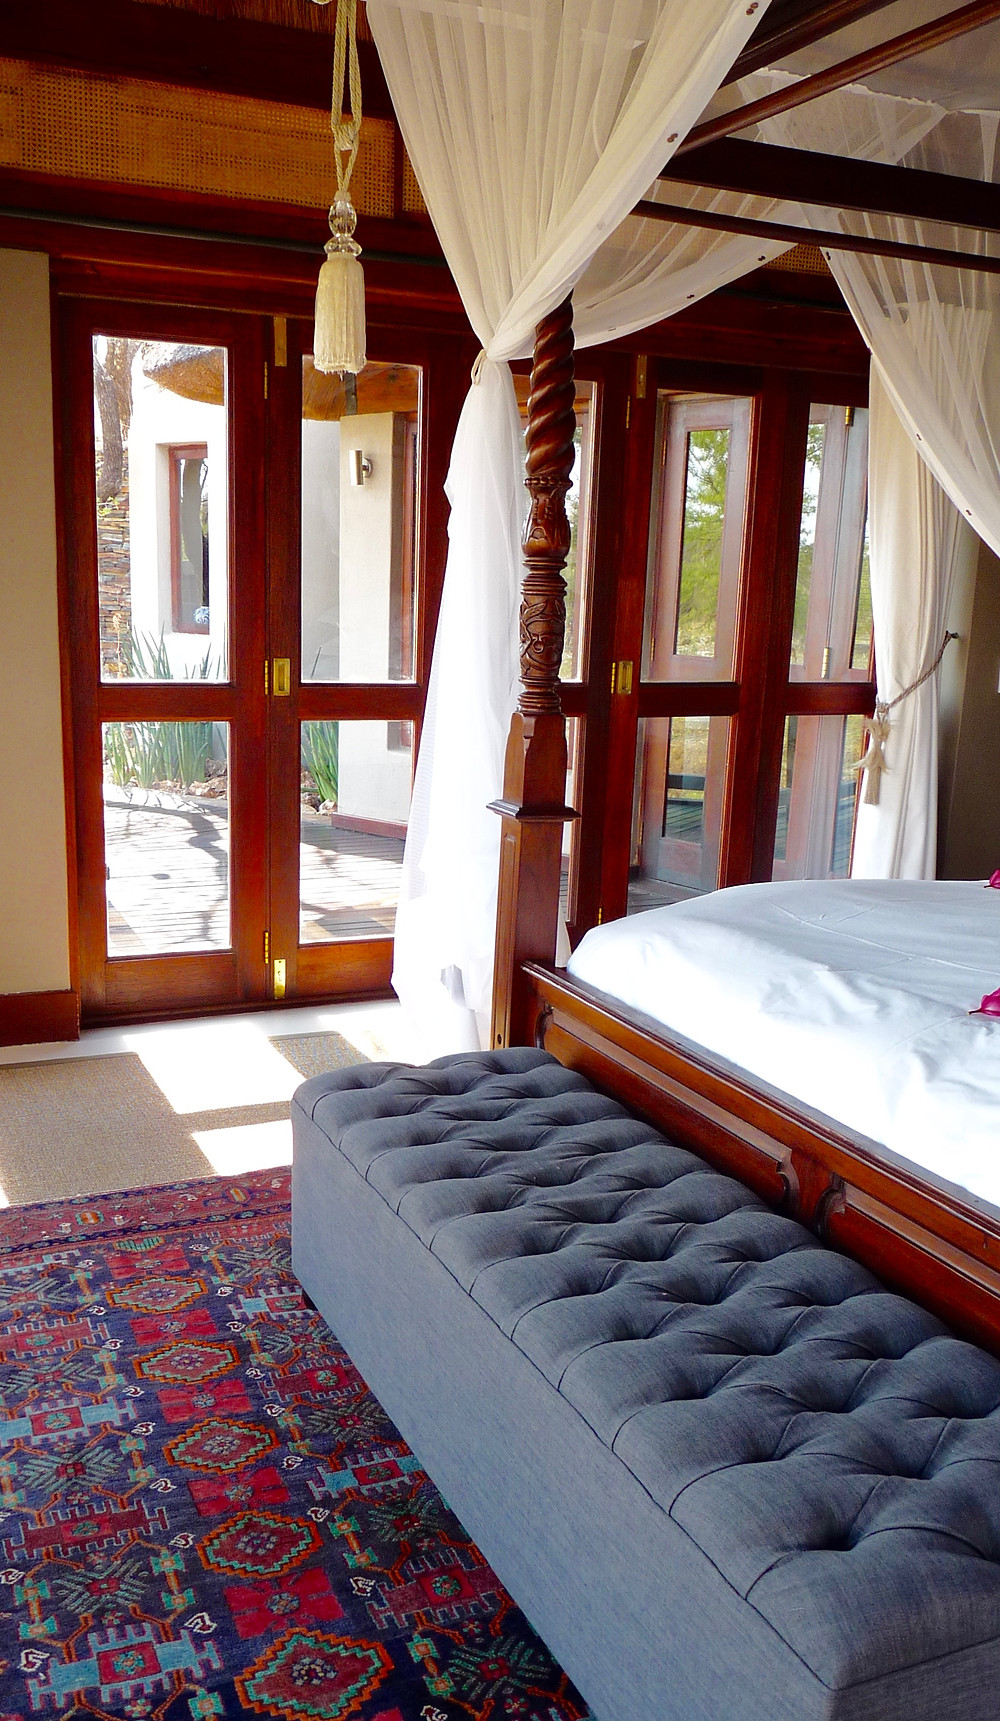 Bedroom at #JamalaMadikwe